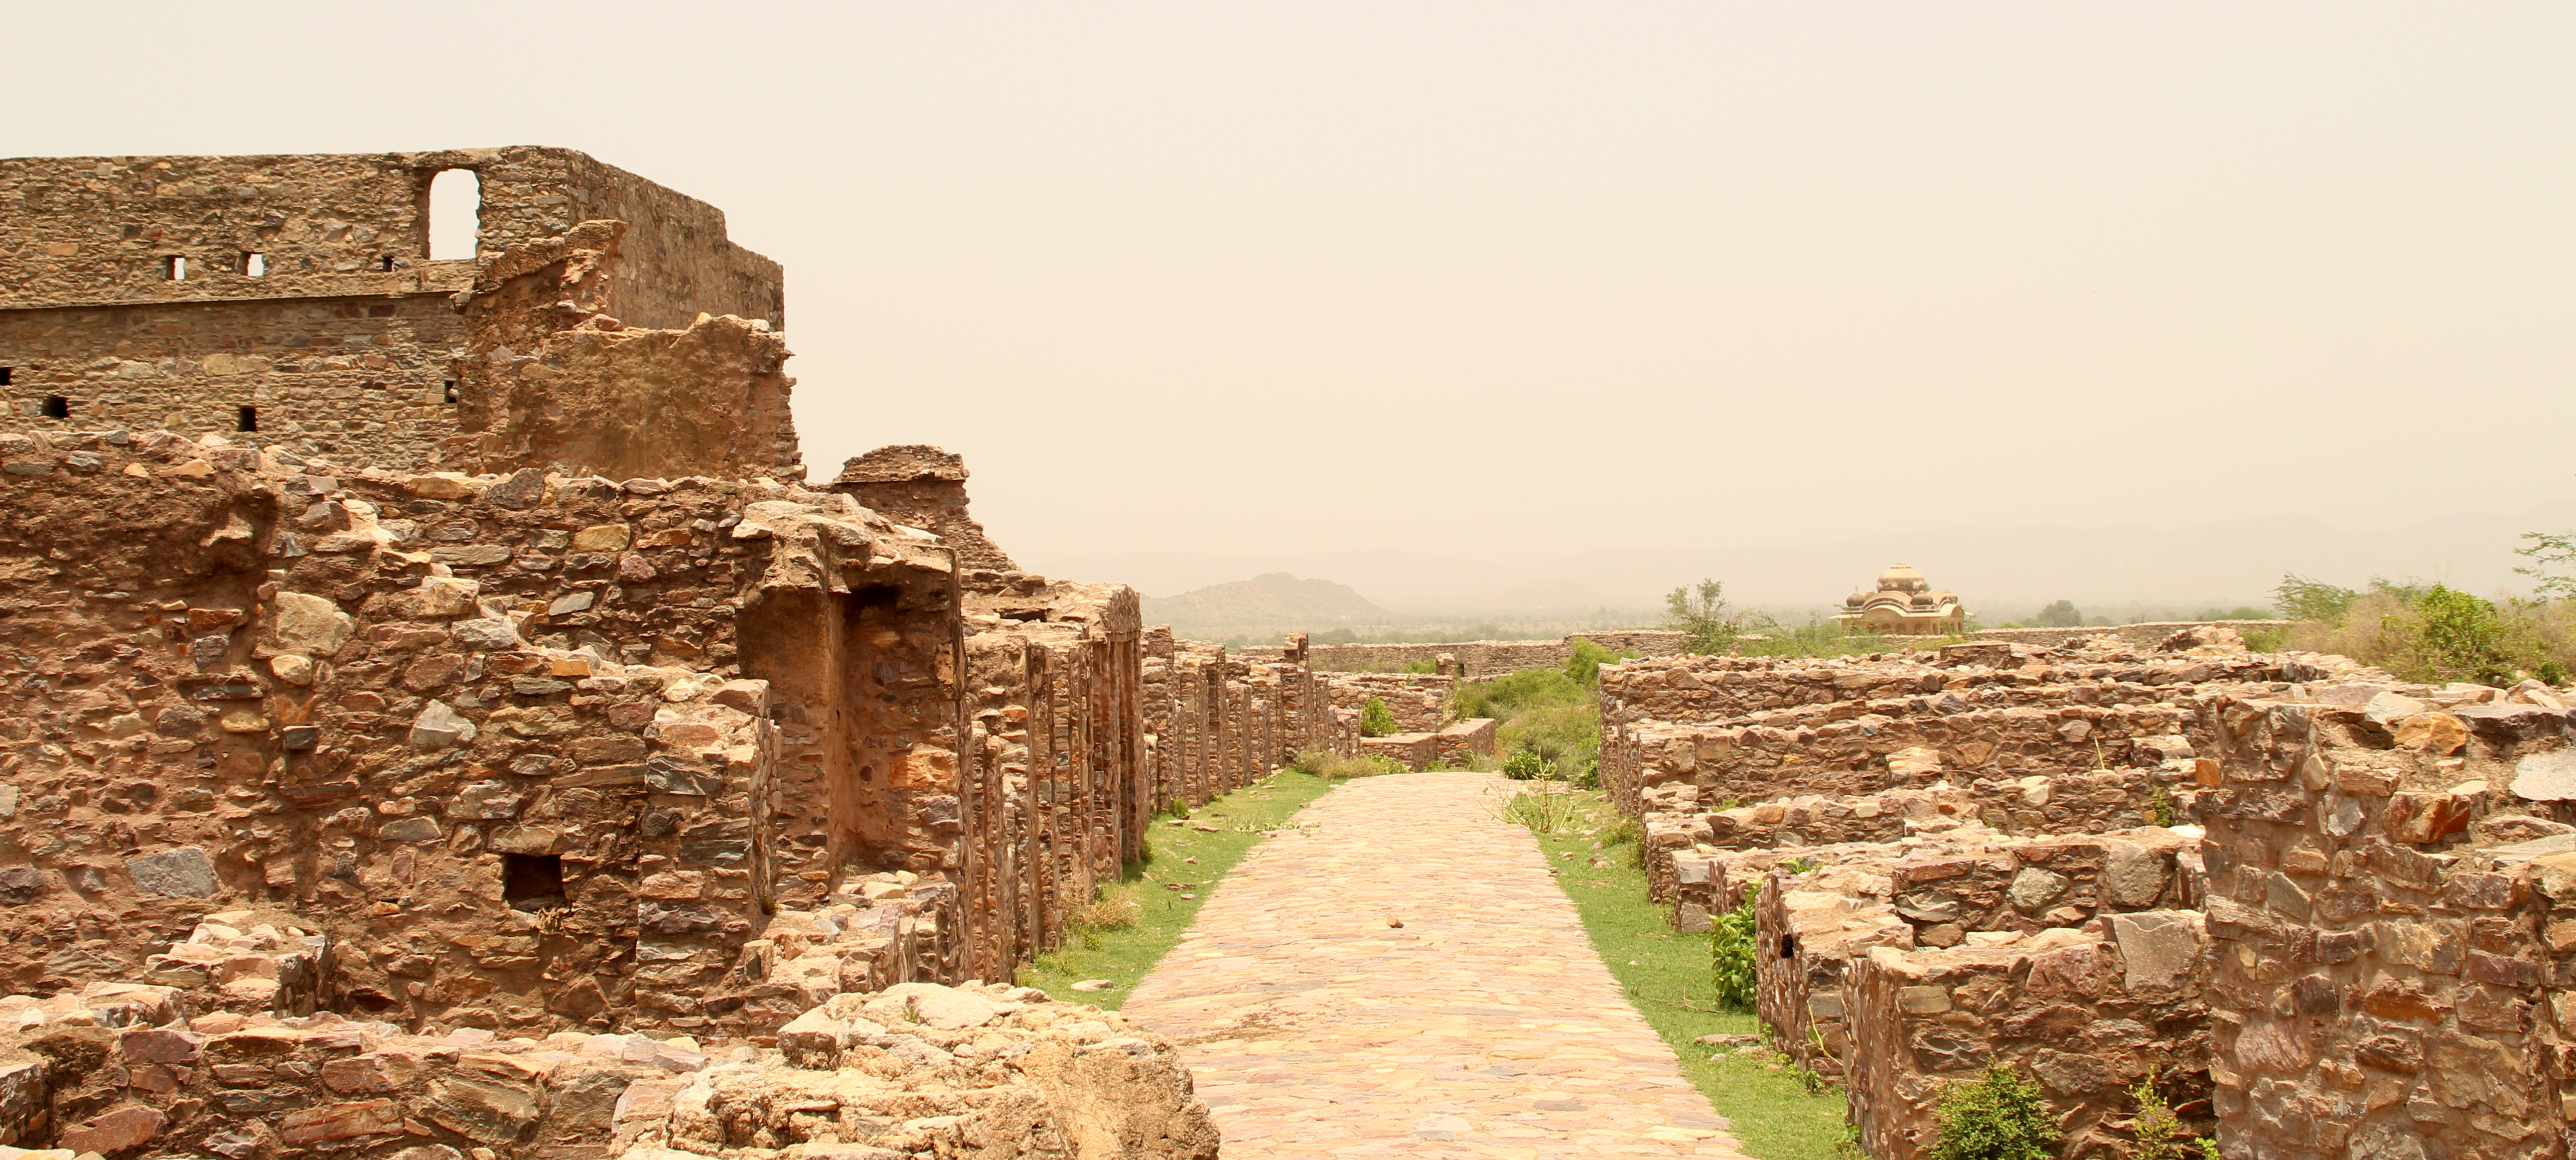 "The Bhangarh Fort Story Behind The Mystery Of The Most ""Haunted"" Place In India"